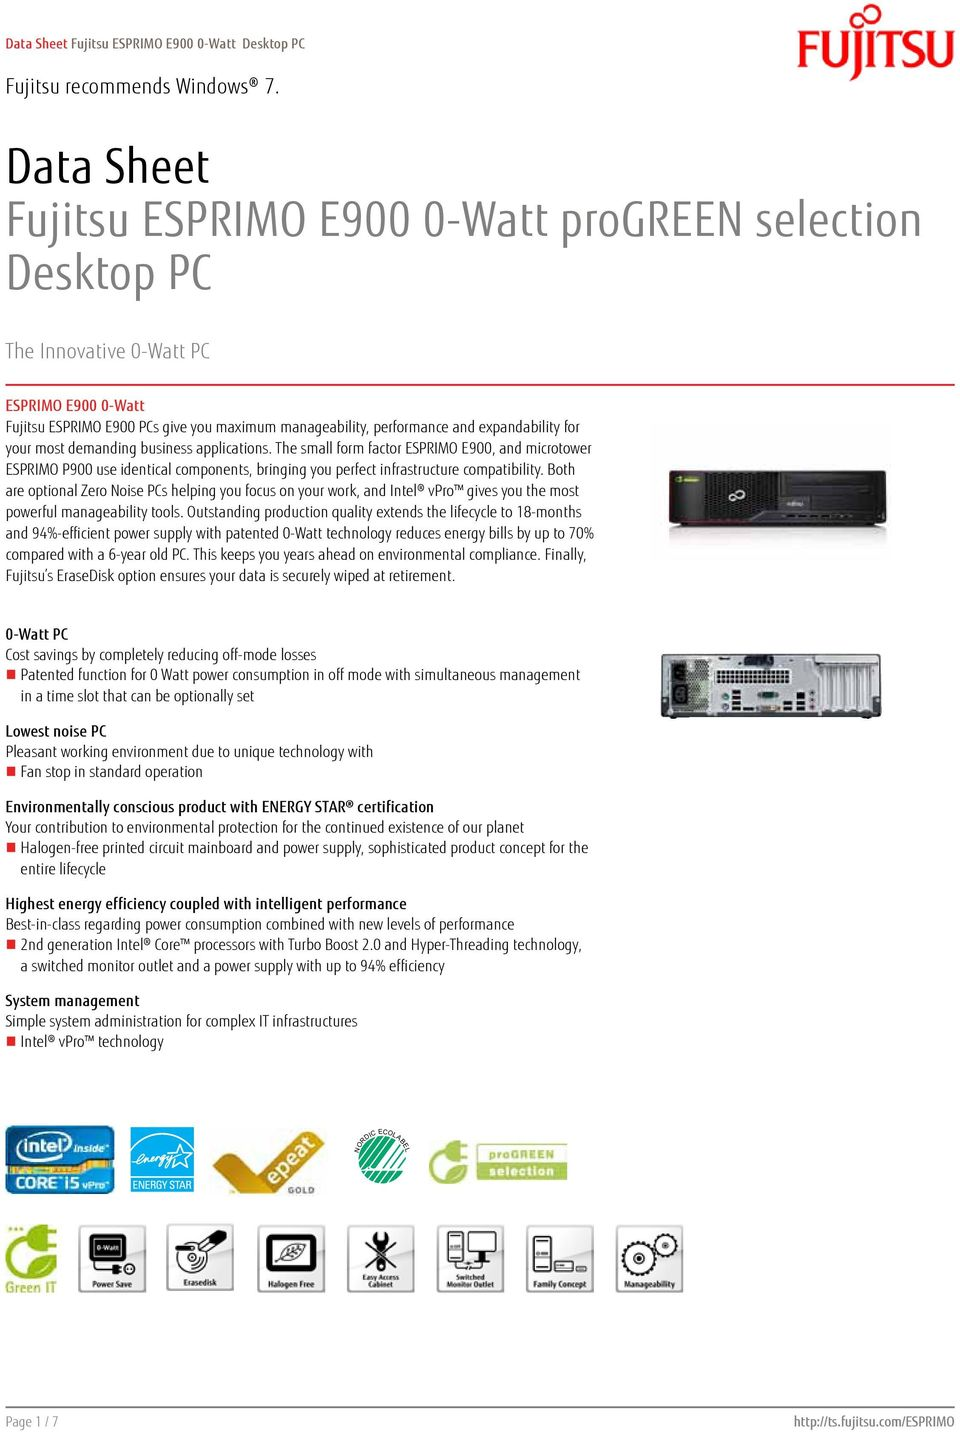 The small form factor ESPRIMO E900, and microtower ESPRIMO P900 use identical components, bringing you perfect infrastructure compatibility.